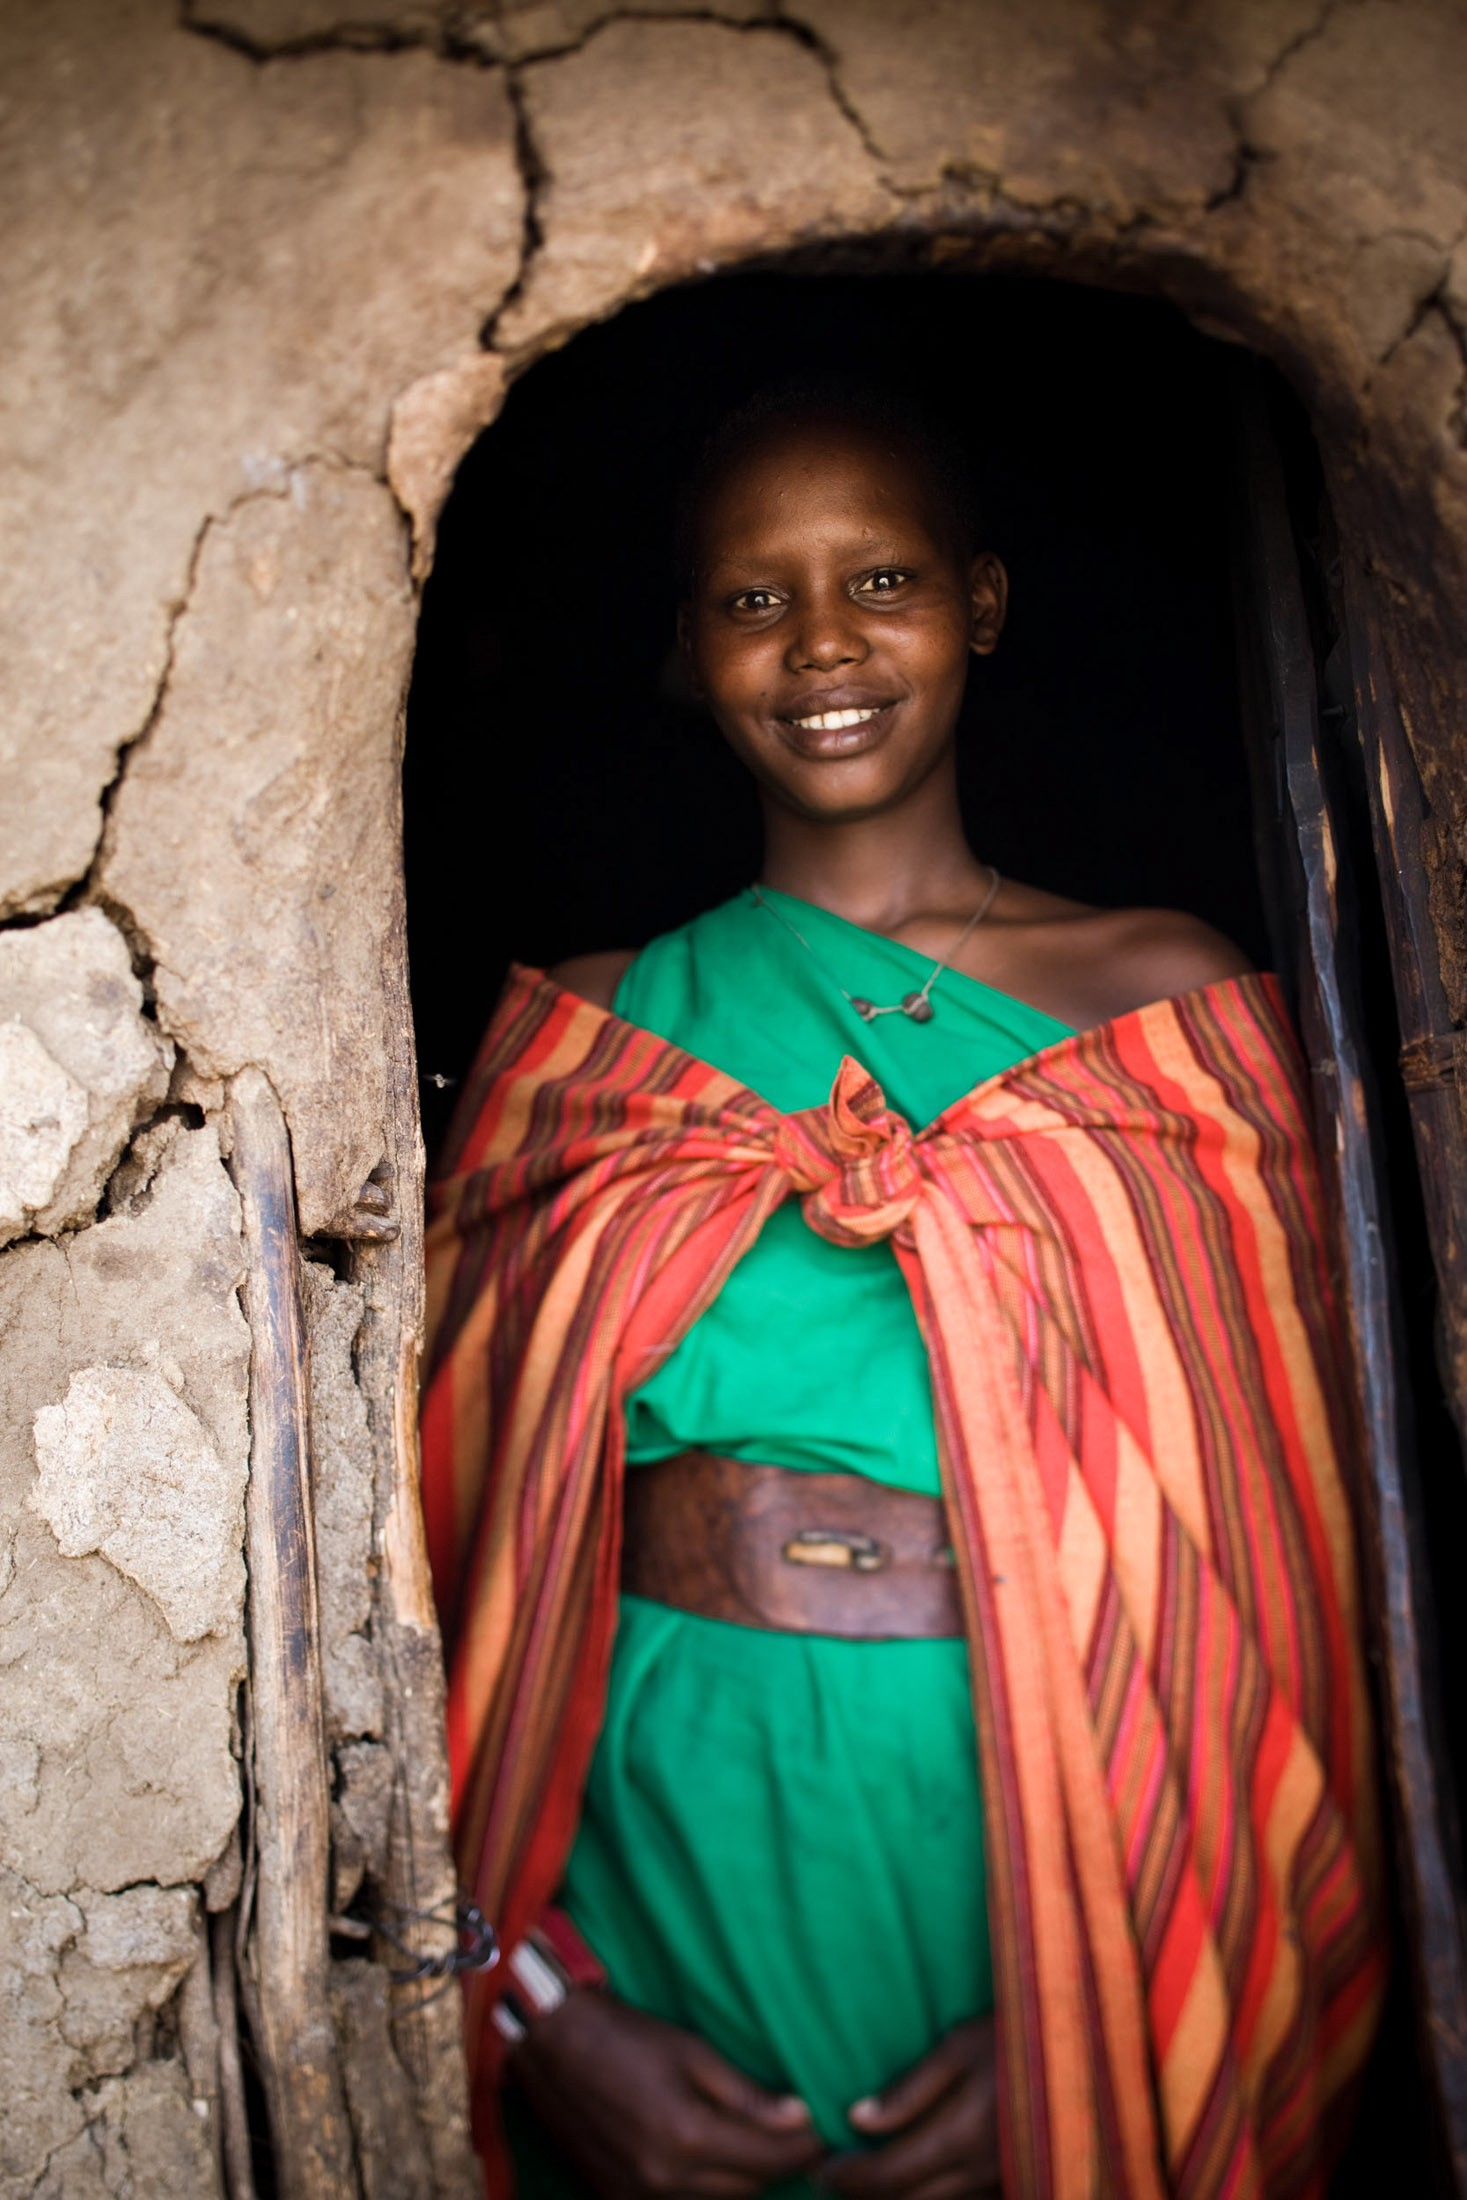 In Maasai society, women build the loaf-shaped inkajijik (house), made of mud, sticks, grass, cow dung and urine. They also collect firewood, milk cattle, cook meals, and fetch water, sometimes from sources miles away.